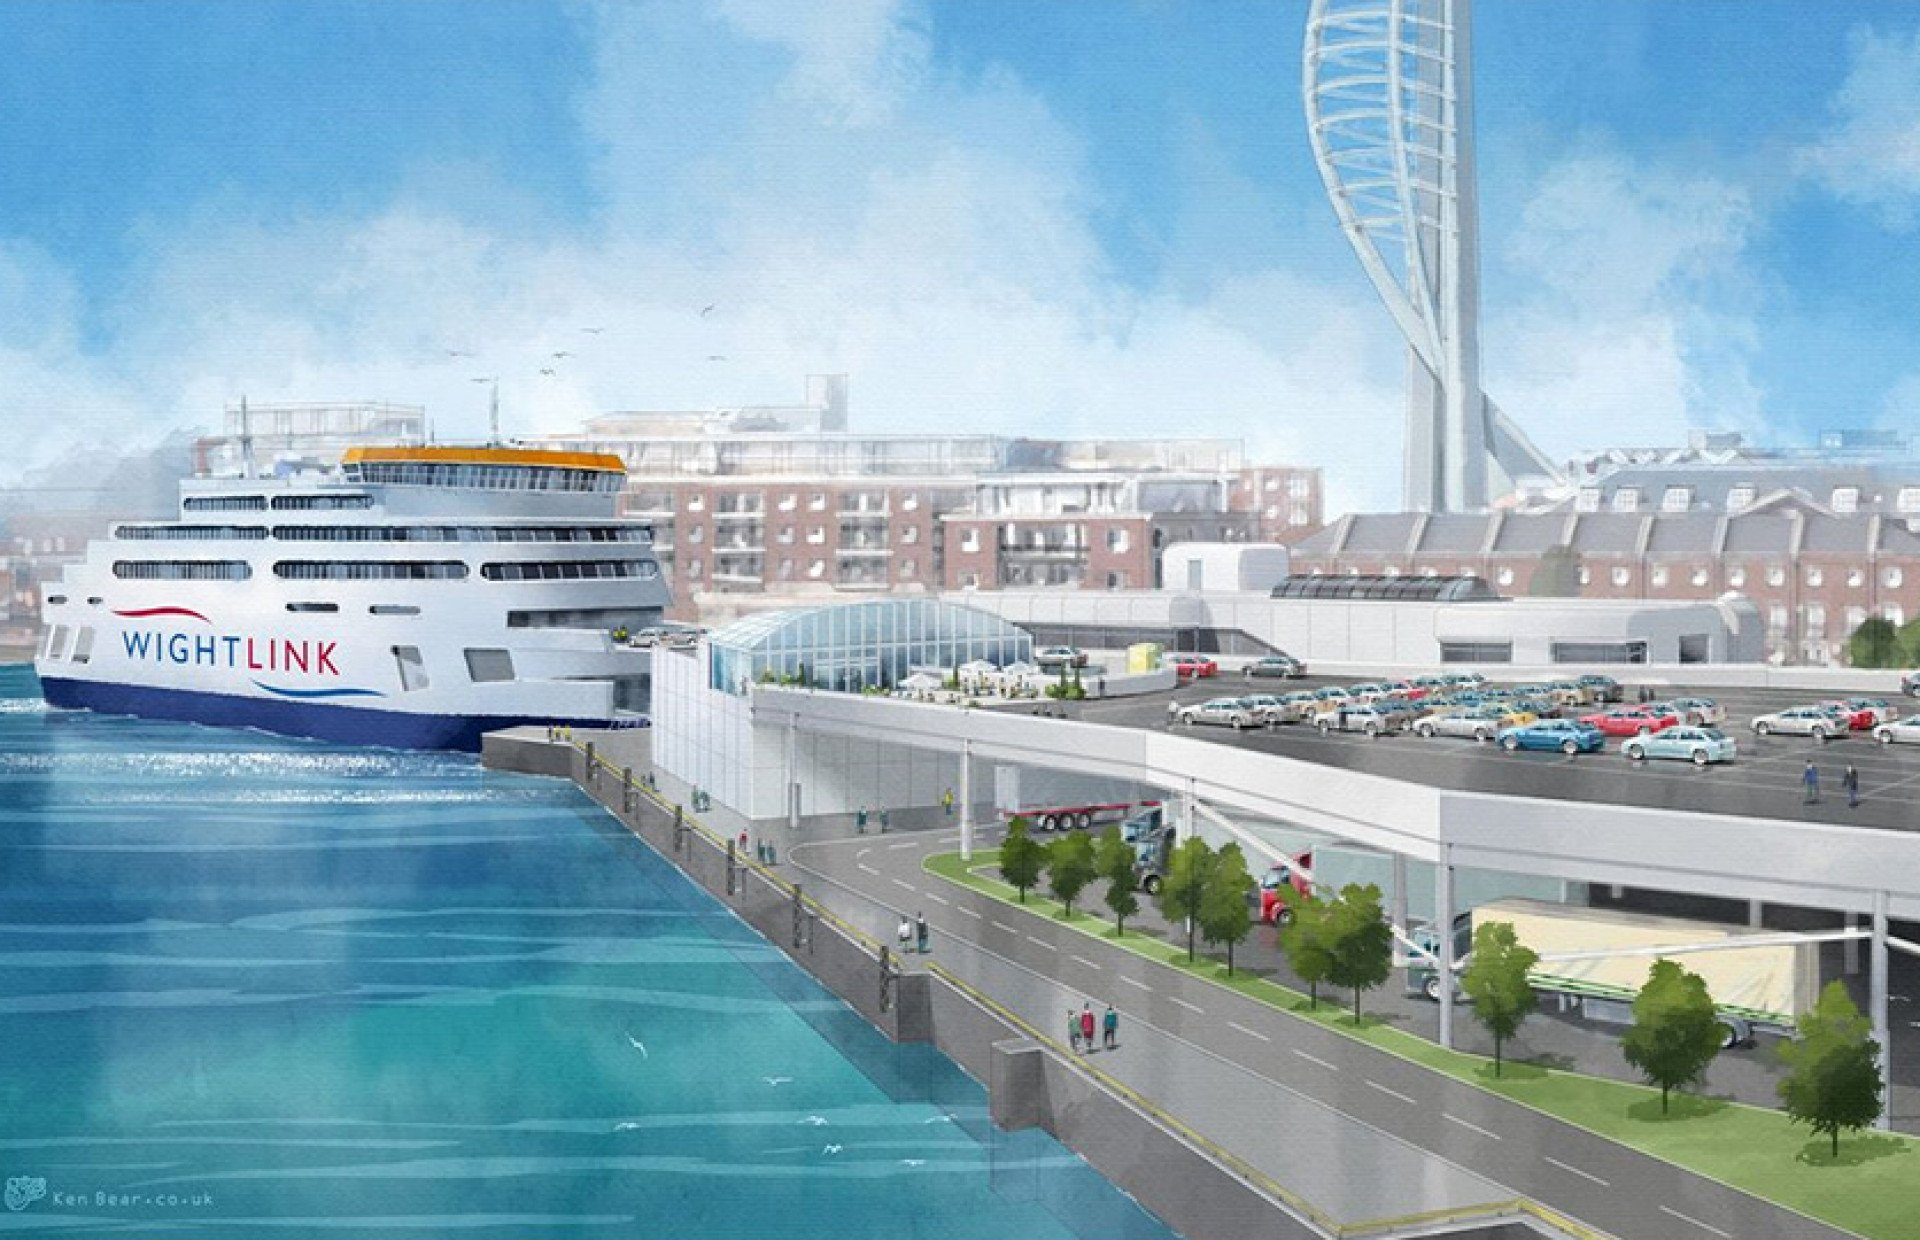 A New Ferry Contract!